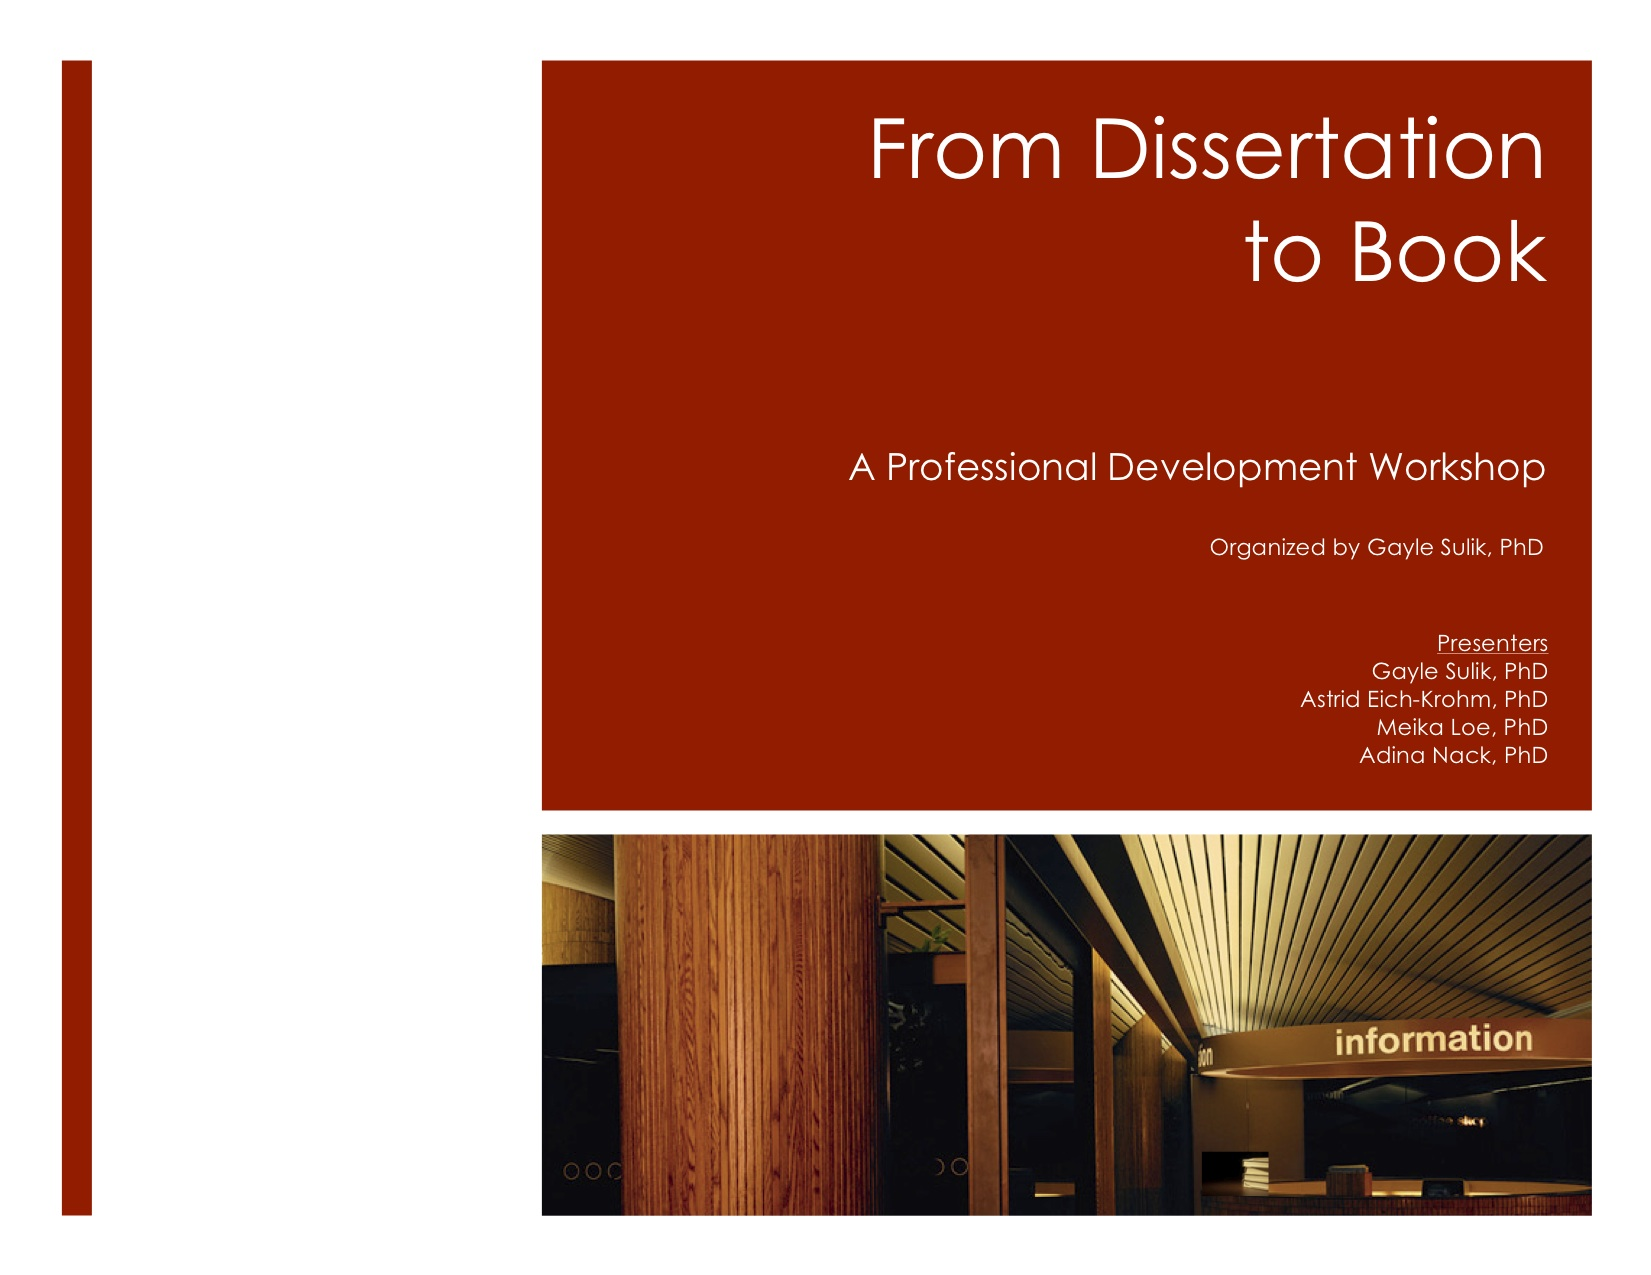 dissertation novel An excerpt from from dissertation to book by william germano also available on web site: online catalogs, secure online ordering, excerpts from new books sign up.